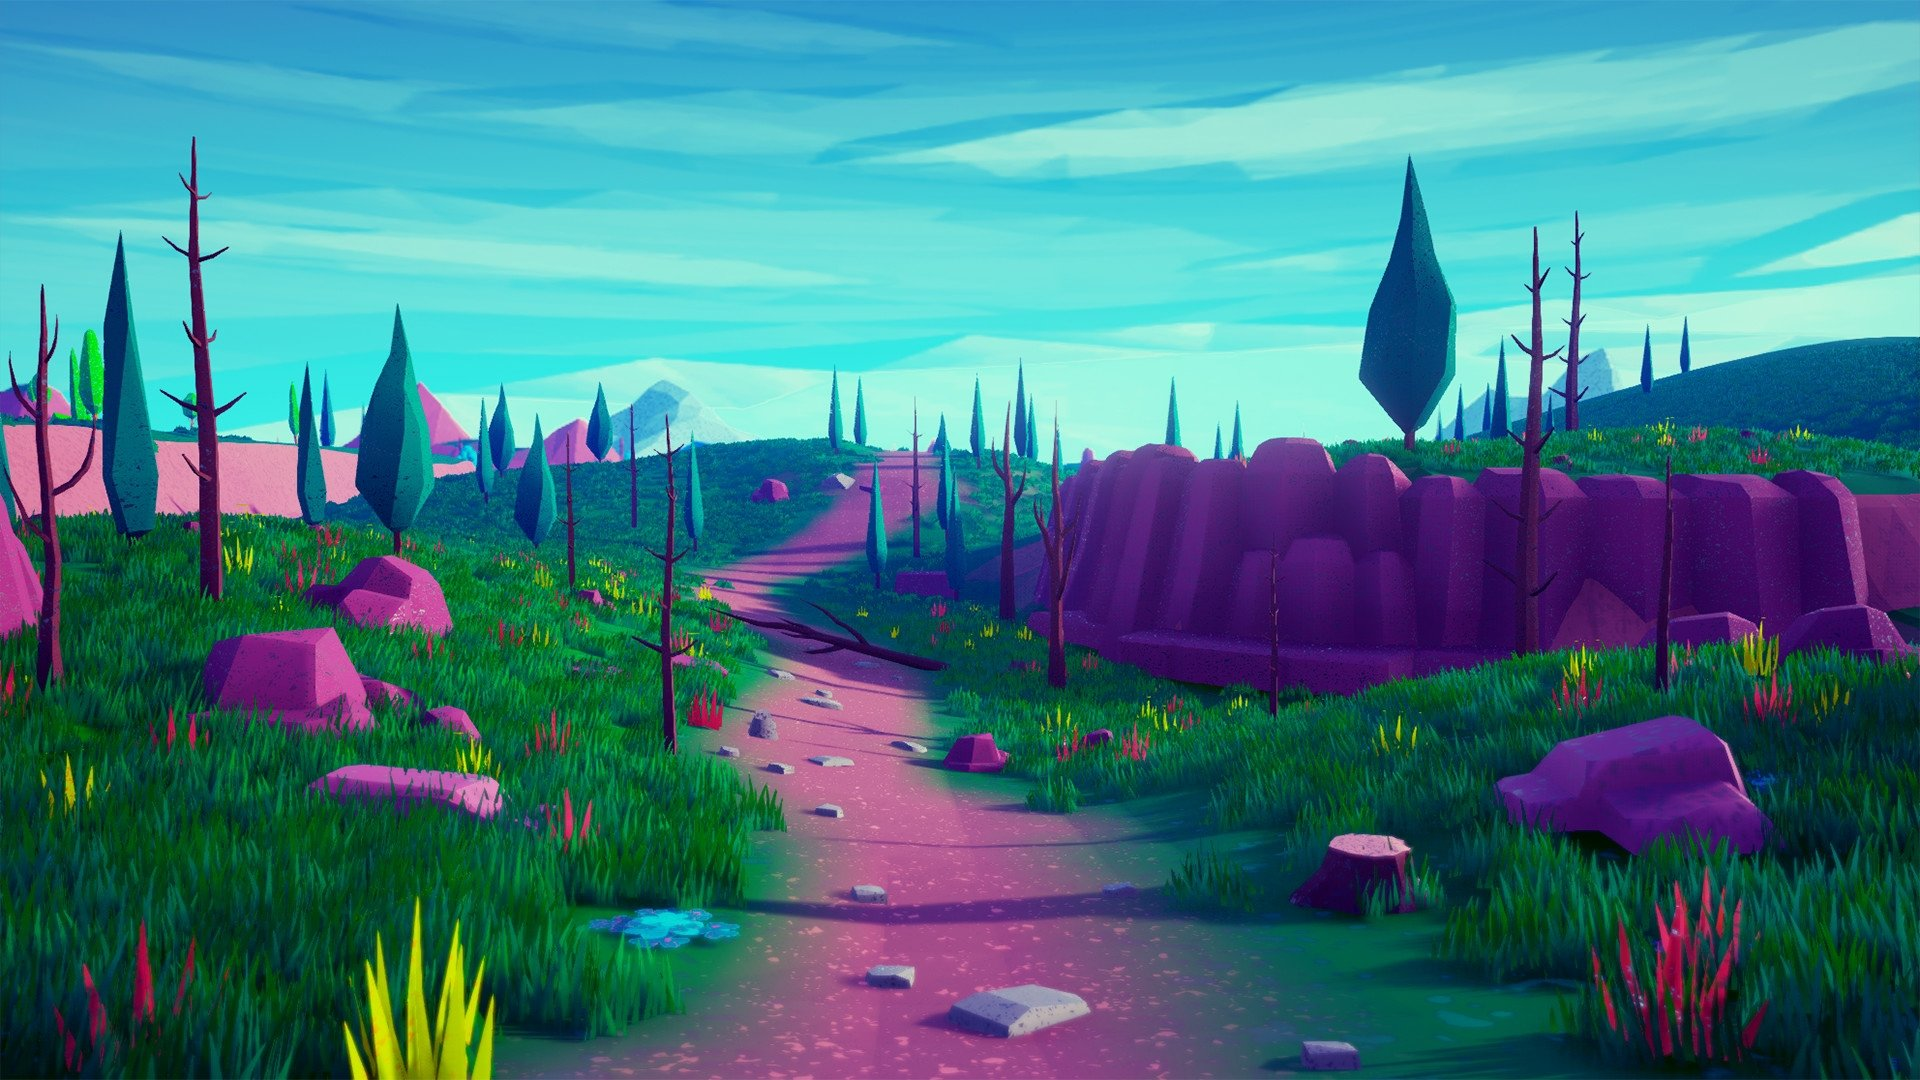 UE4] Lowpoly Stylized Environment — polycount